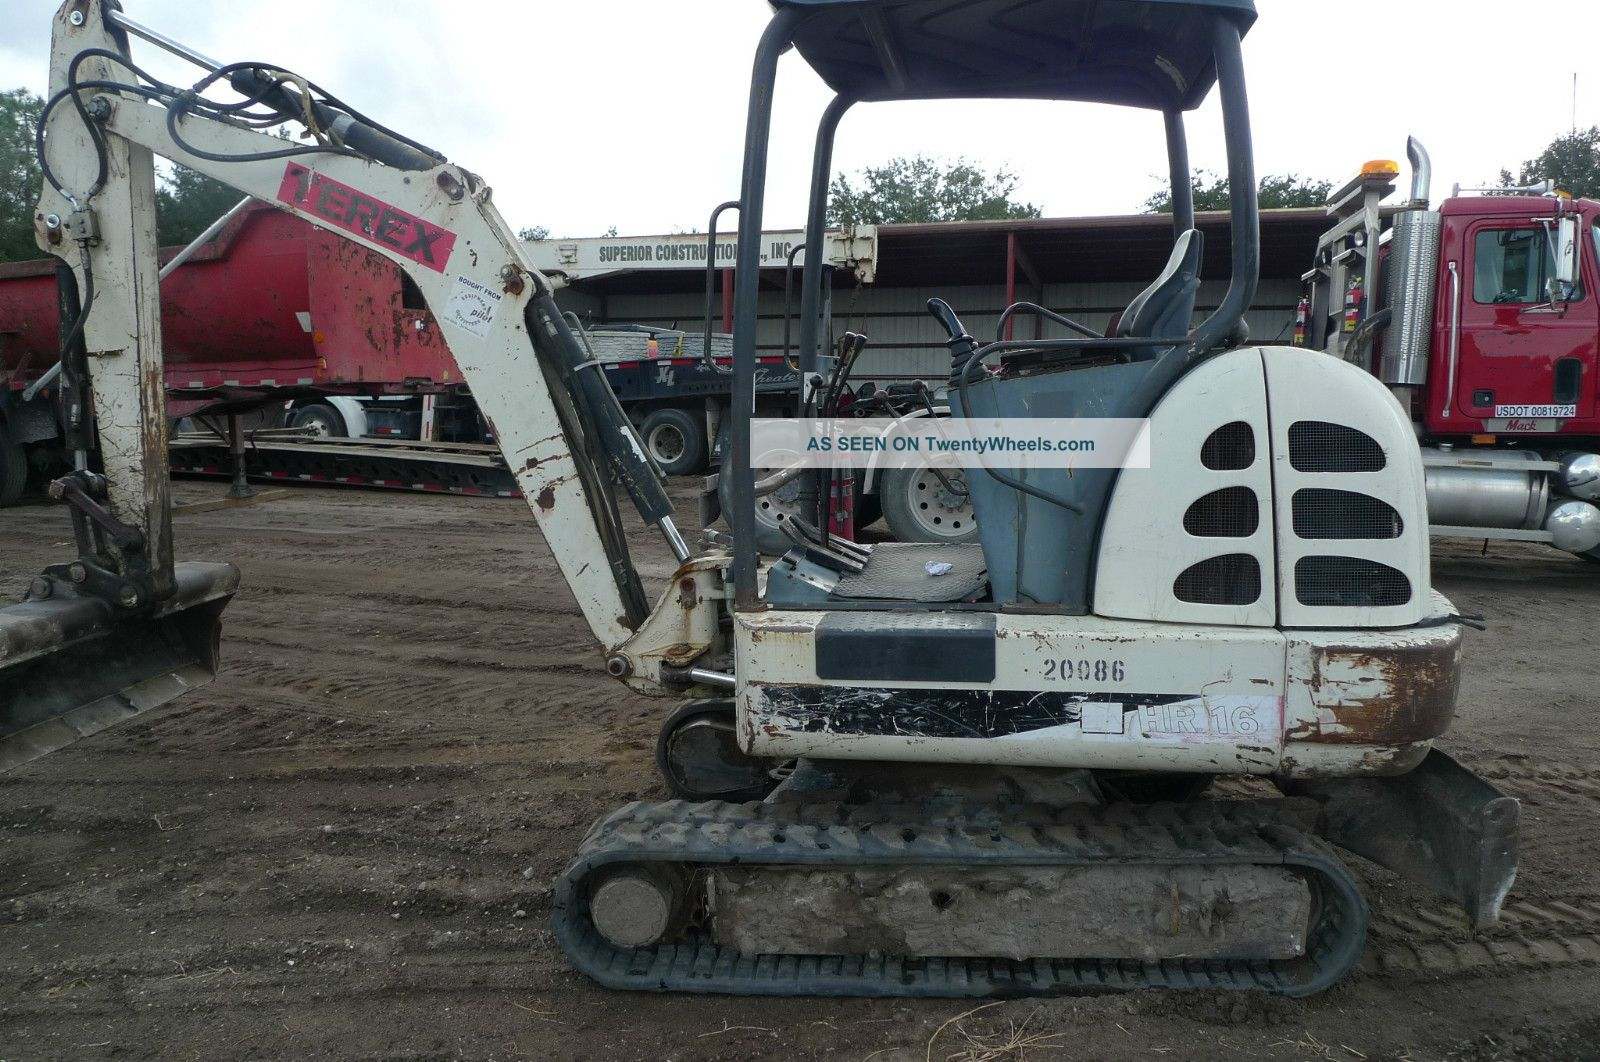 2004 Terex Model Hr 16 Mini Excavator Excavators photo